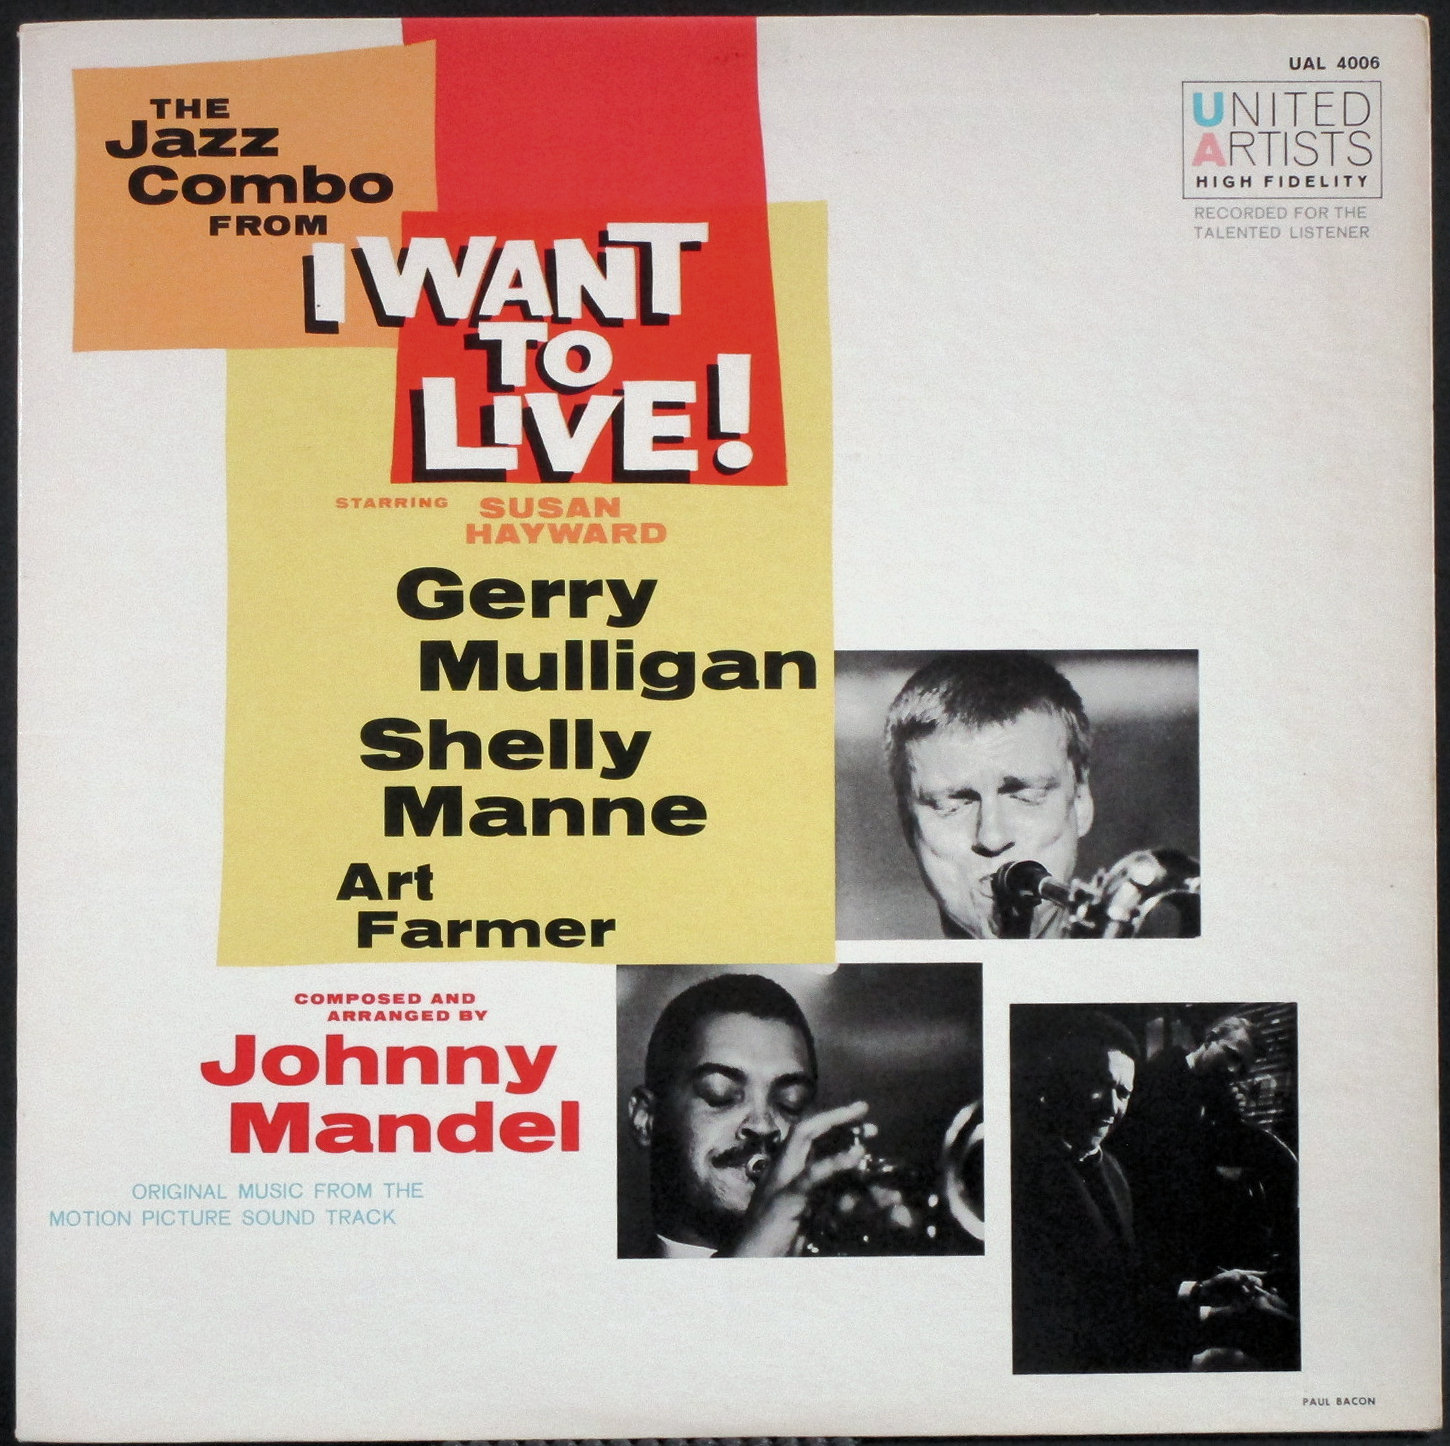 """Gerry Mulligan  ジェリー・マリガン / Gerry Mulligan's Jazz Combo From """"I Want To Live!"""" 